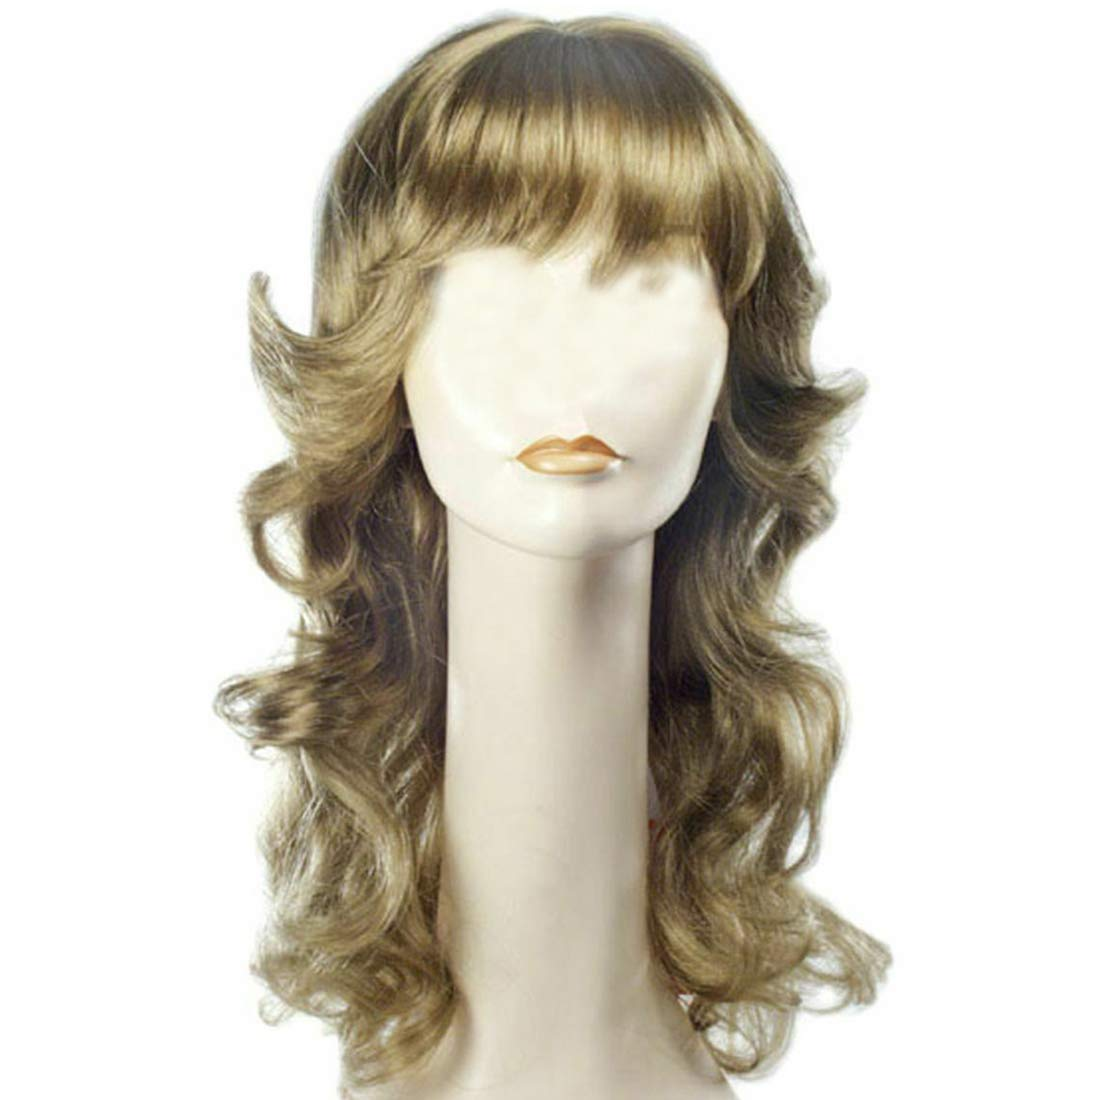 70s Headbands, Wigs, Hair Accessories Angel Farrah Fawcett Color Strawberry Blonde - Lacey Wigs Womens 70s Feathered Model Roller Girl Farah Poster Bundle Costume Wig Care Guide $38.87 AT vintagedancer.com